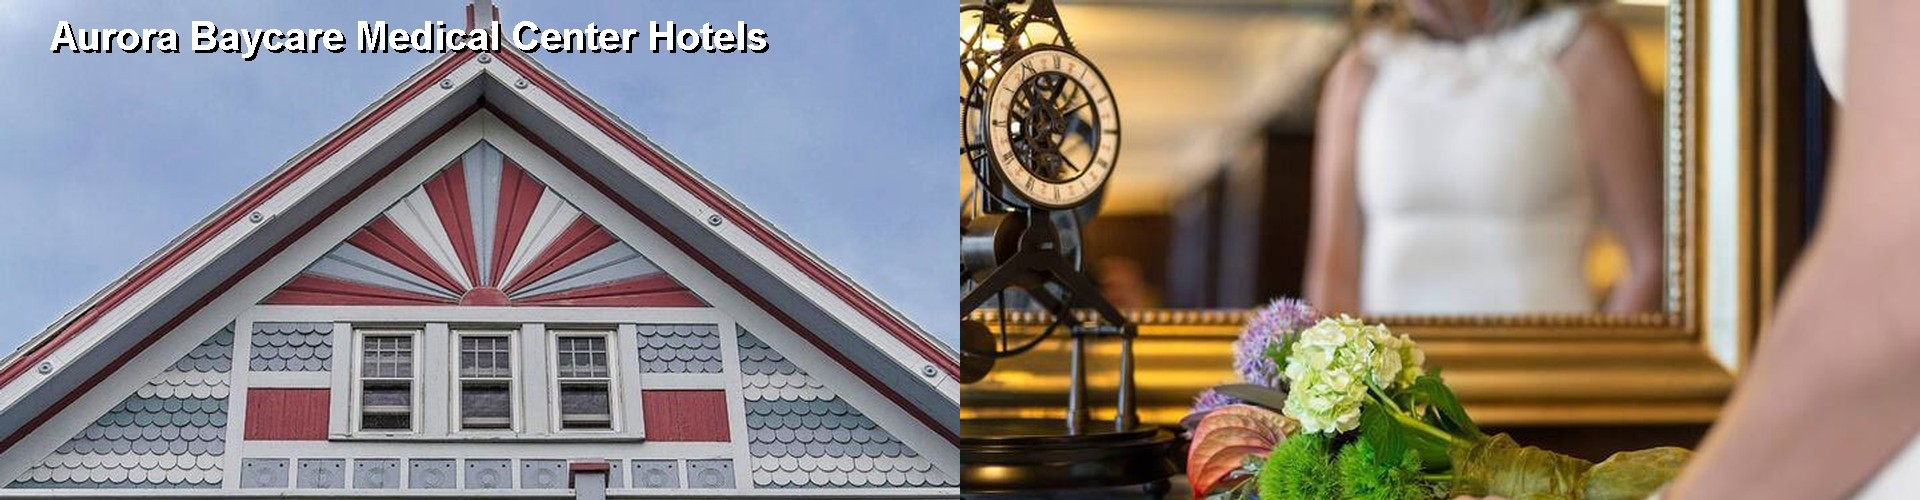 5 Best Hotels near Aurora Baycare Medical Center